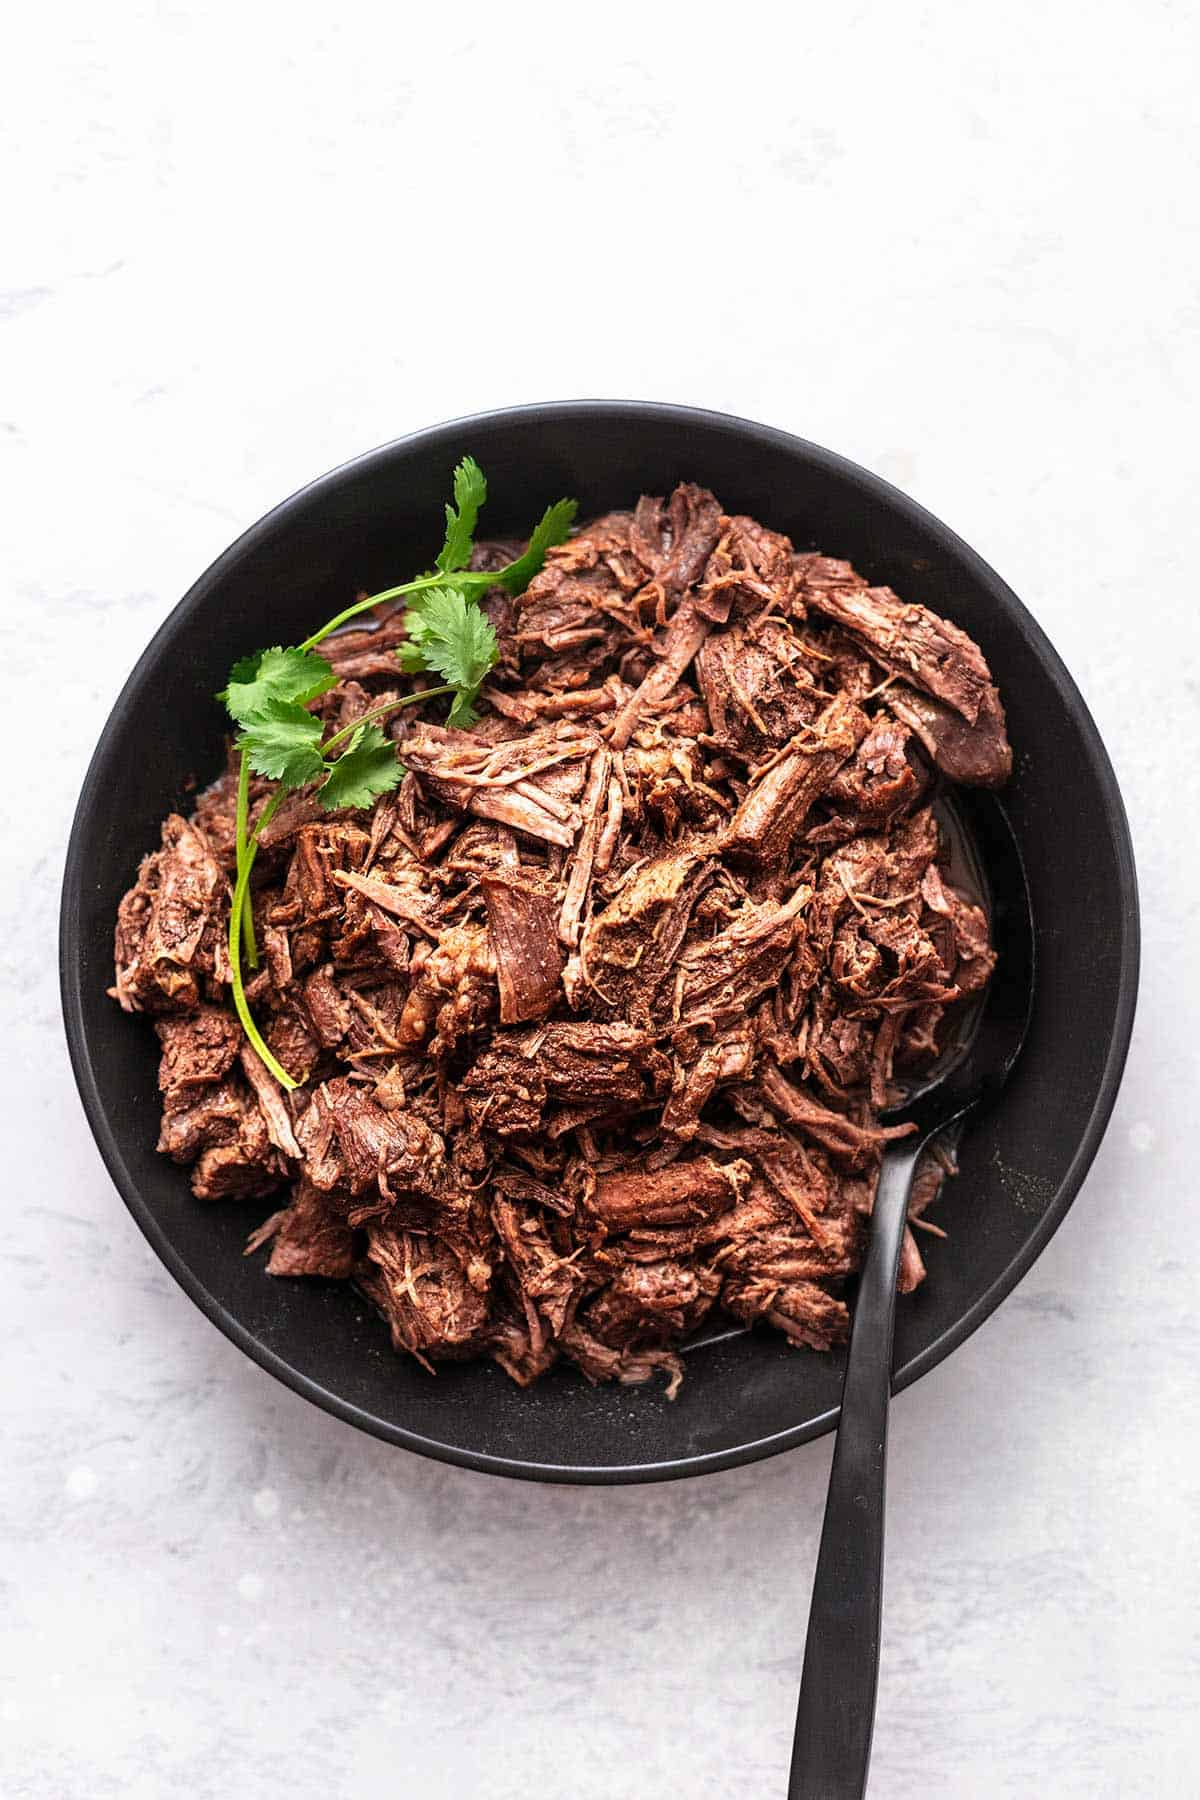 shredded beef on a platter